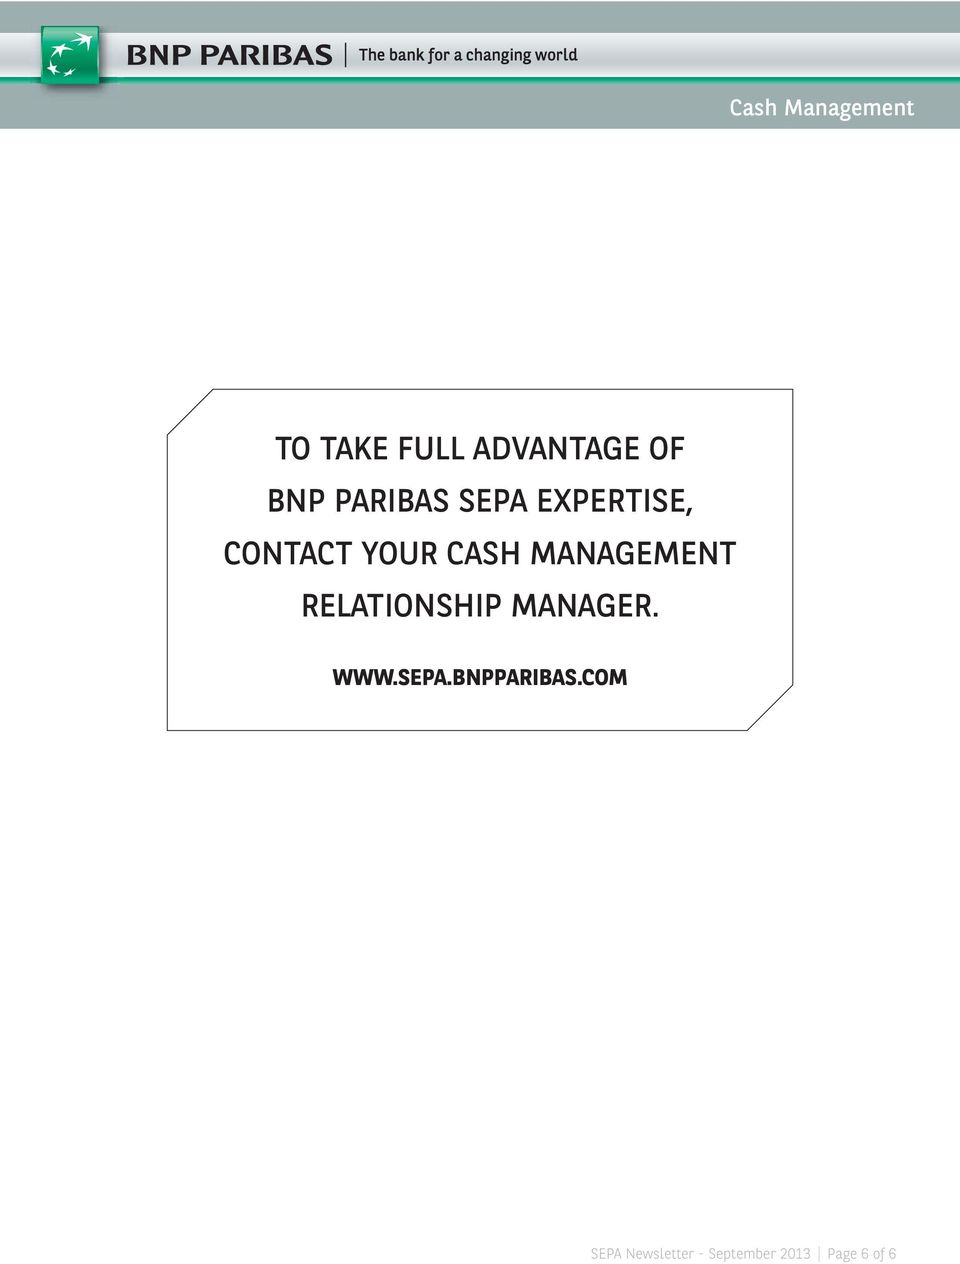 RELATIONSHIP MANAGER. WWW.SEPA.BNPPARIBAS.